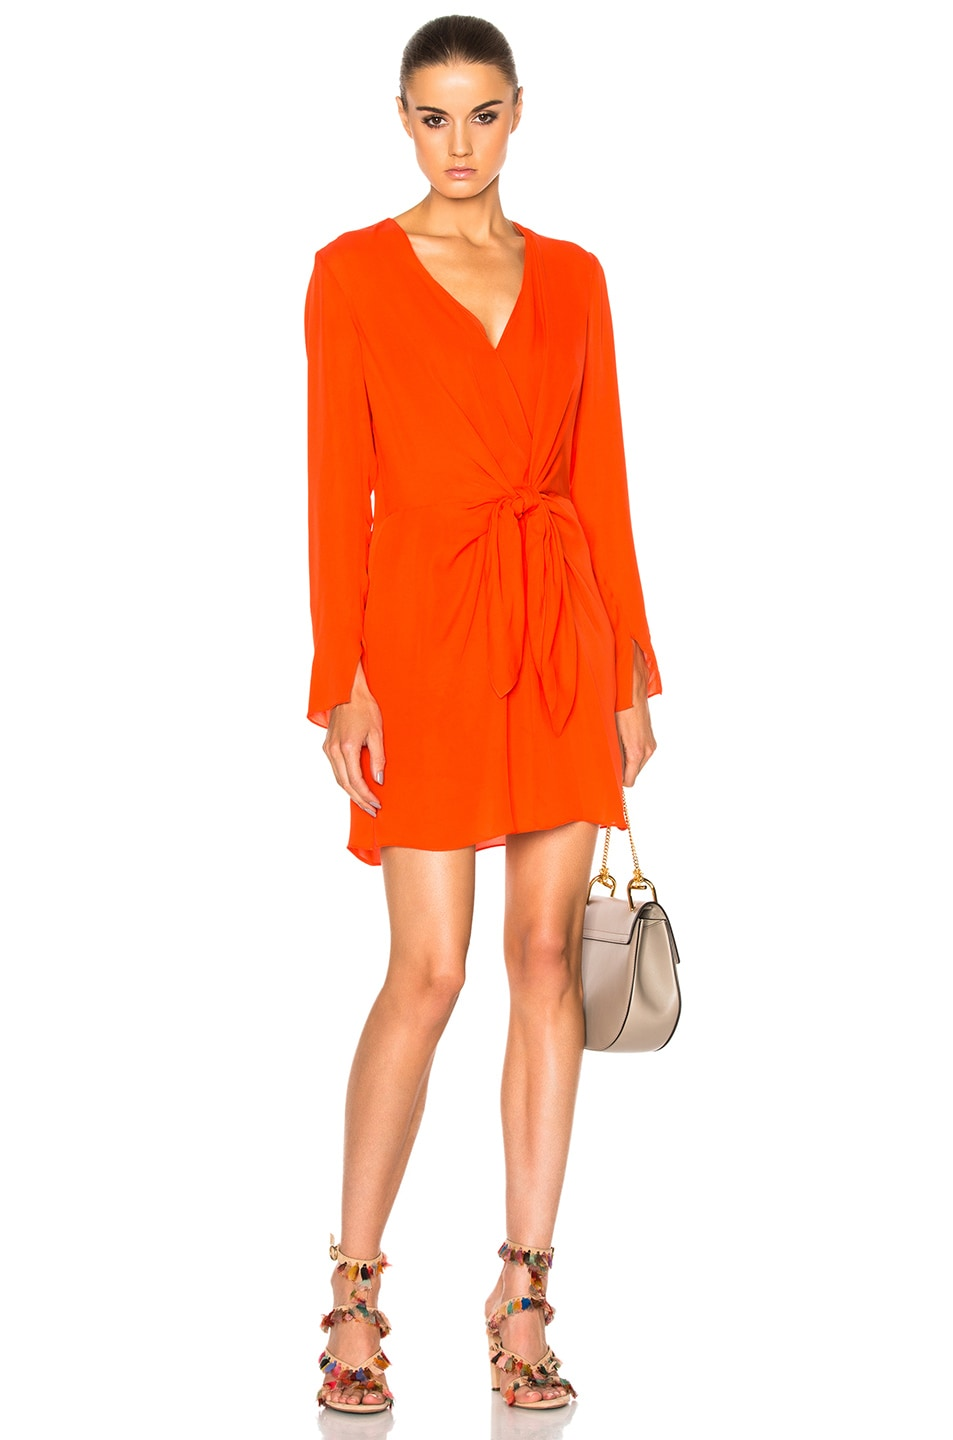 3.1 Phillip Lim Silks LONG SLEEVE FRONT KNOT DRESS IN RED.